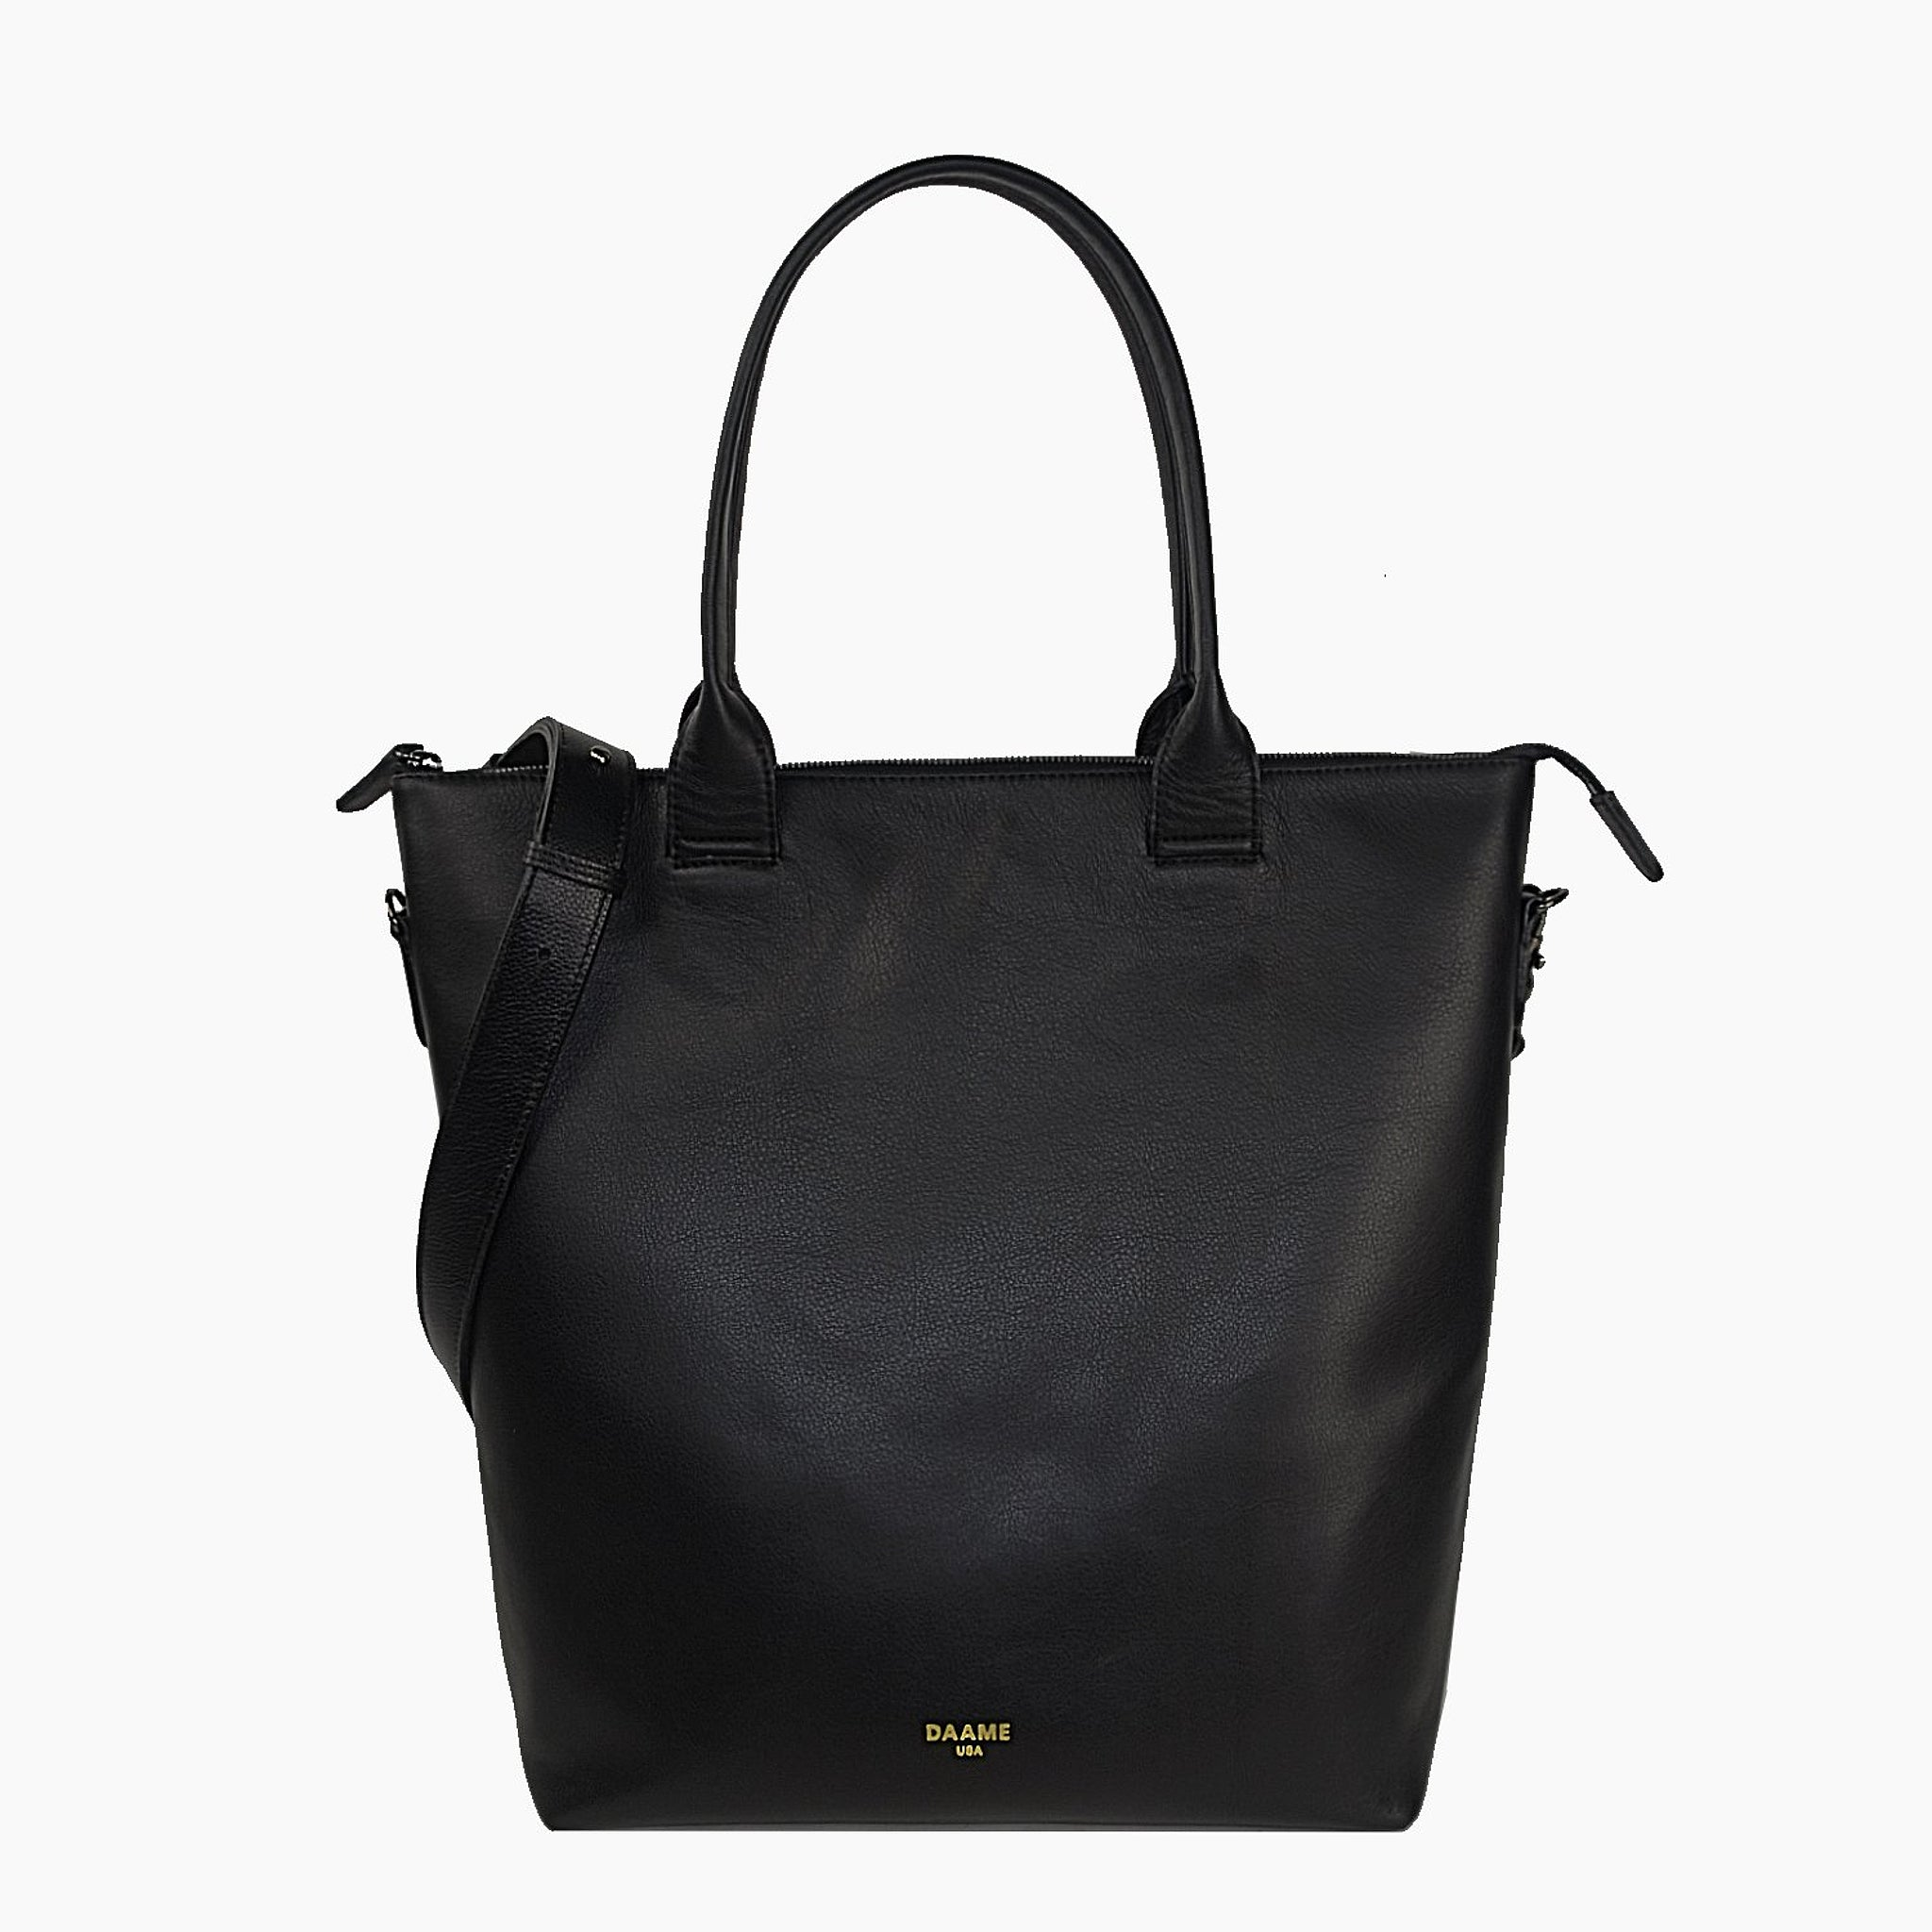 Everest tote